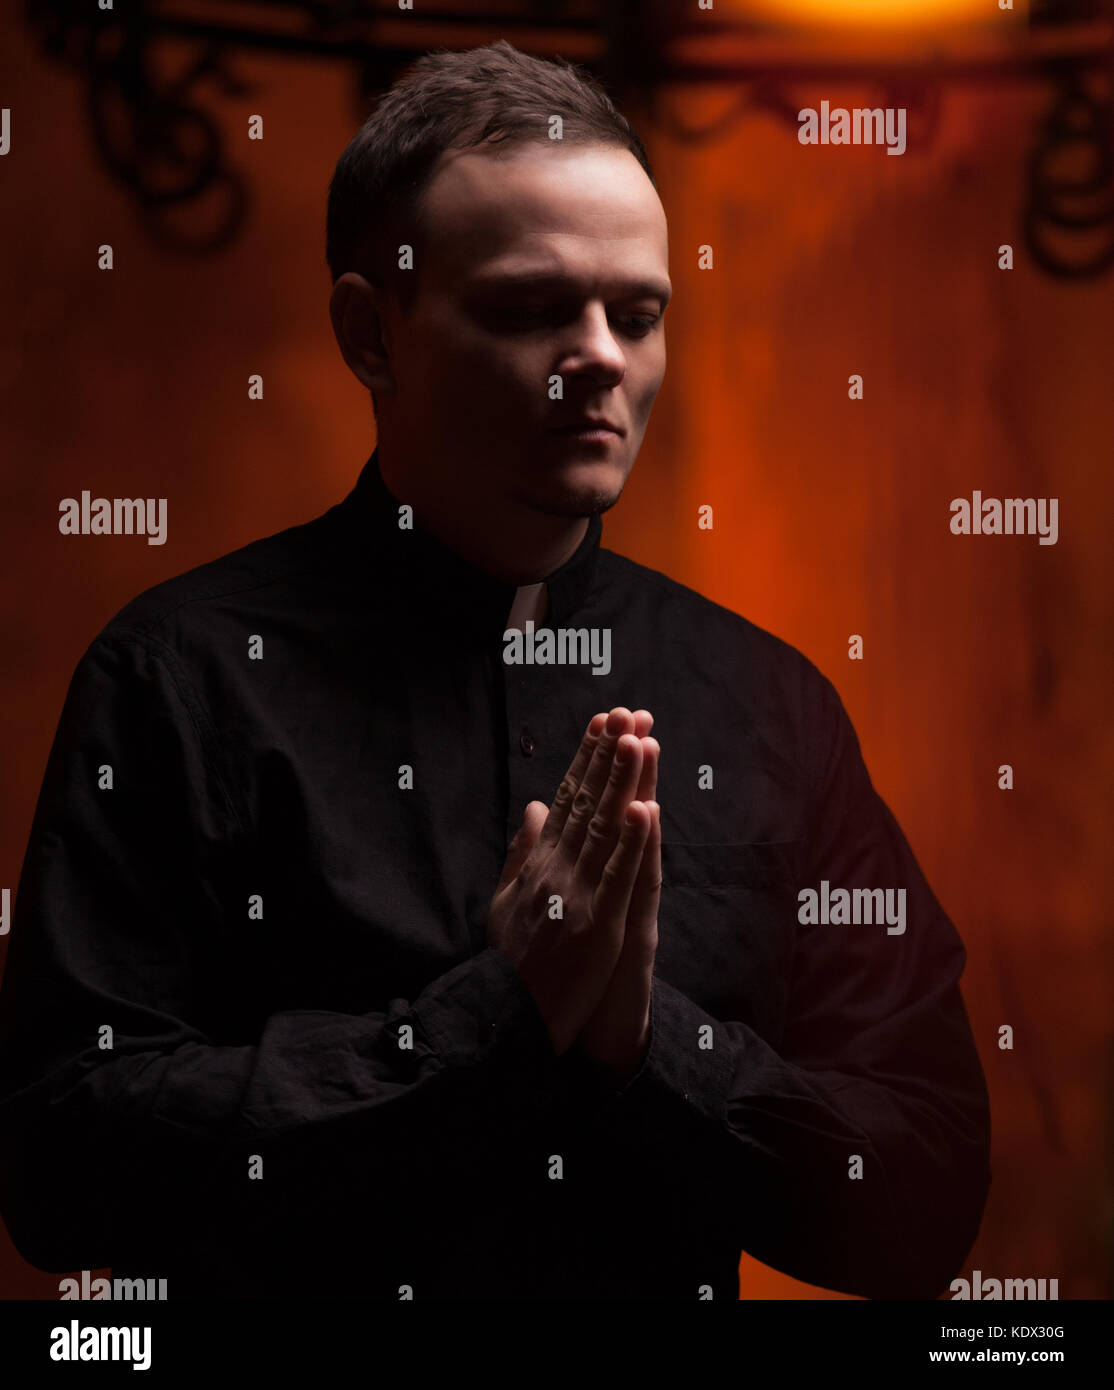 Portrait of handsome catholic priest or pastor with dog collar, dark red background. folded his hands in prayer - Stock Image